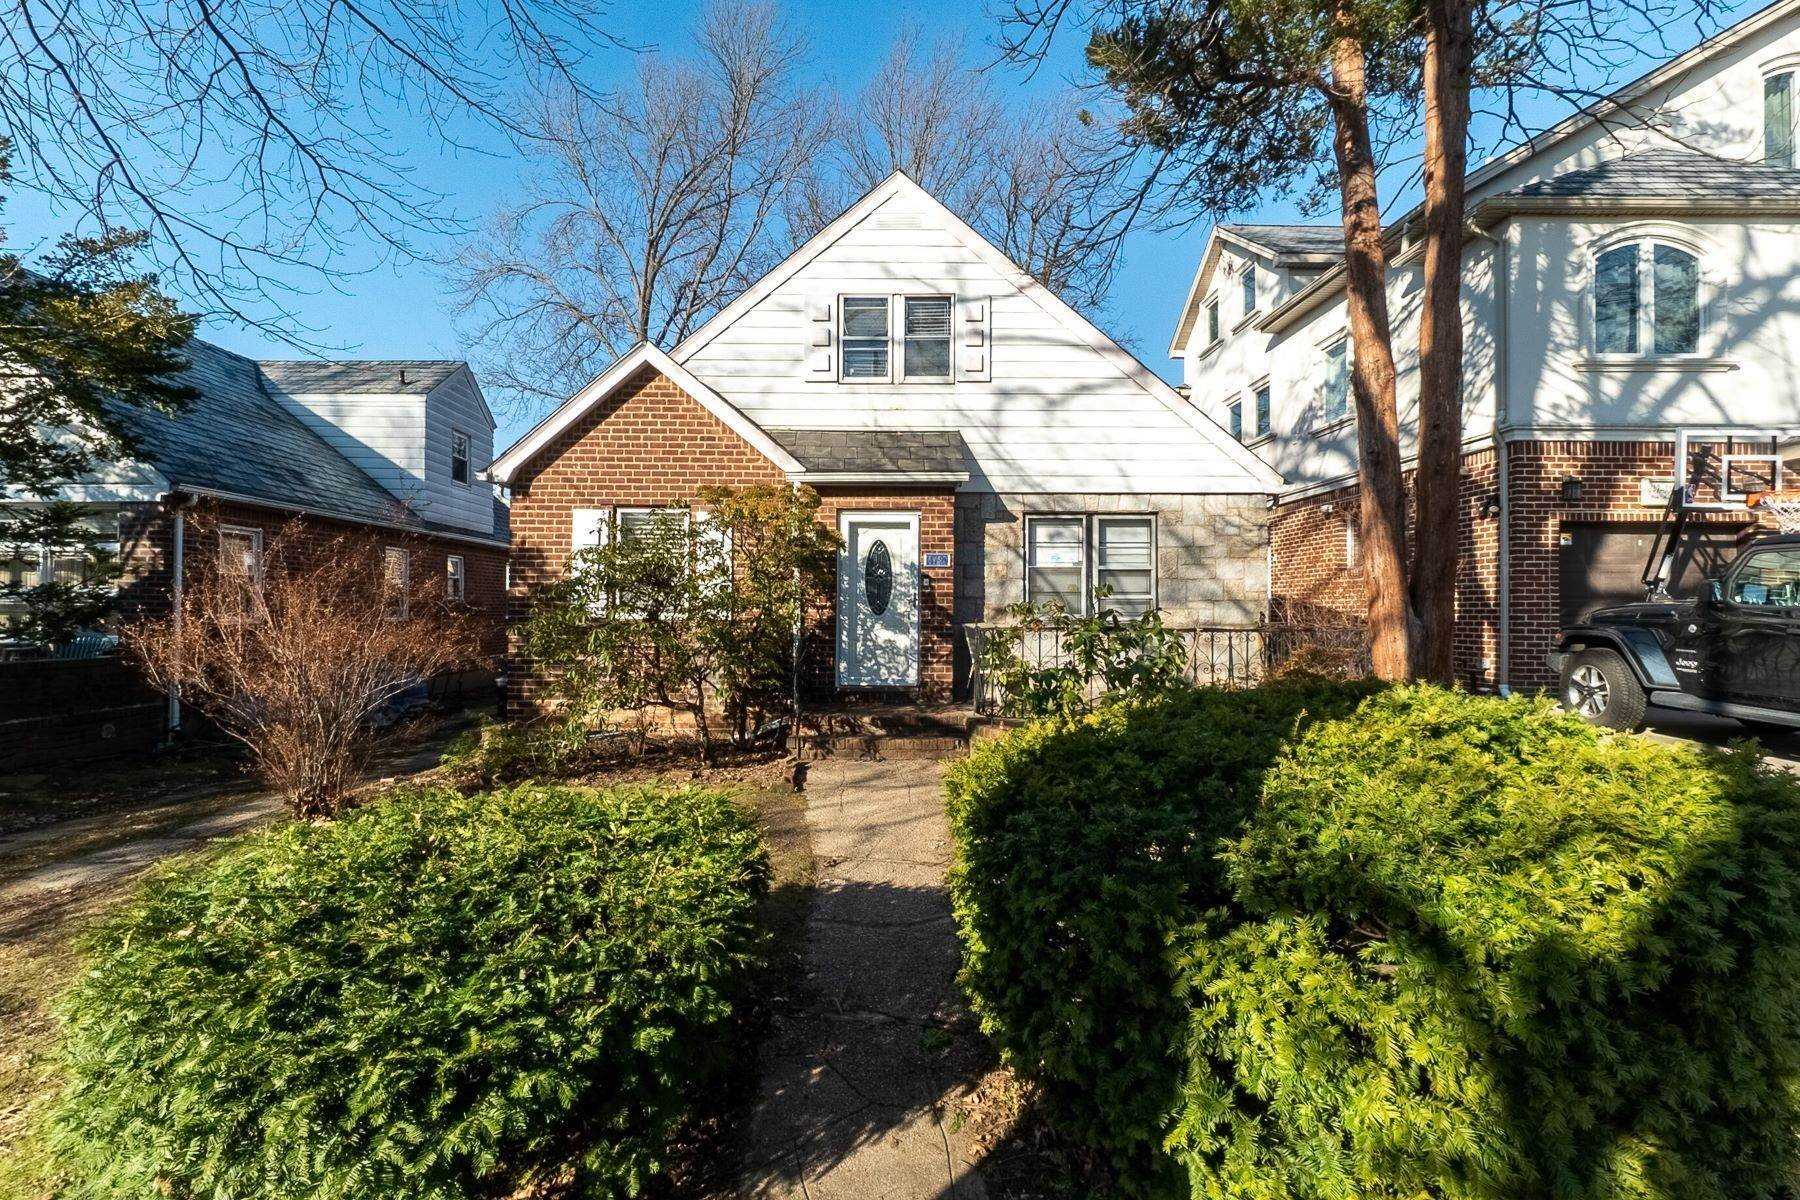 Single Family Homes for Sale at 147-29 70th Avenue, Kew Garden Hills, NY 11367 147-29 70th Avenue Kew Gardens Hills, New York 11367 United States